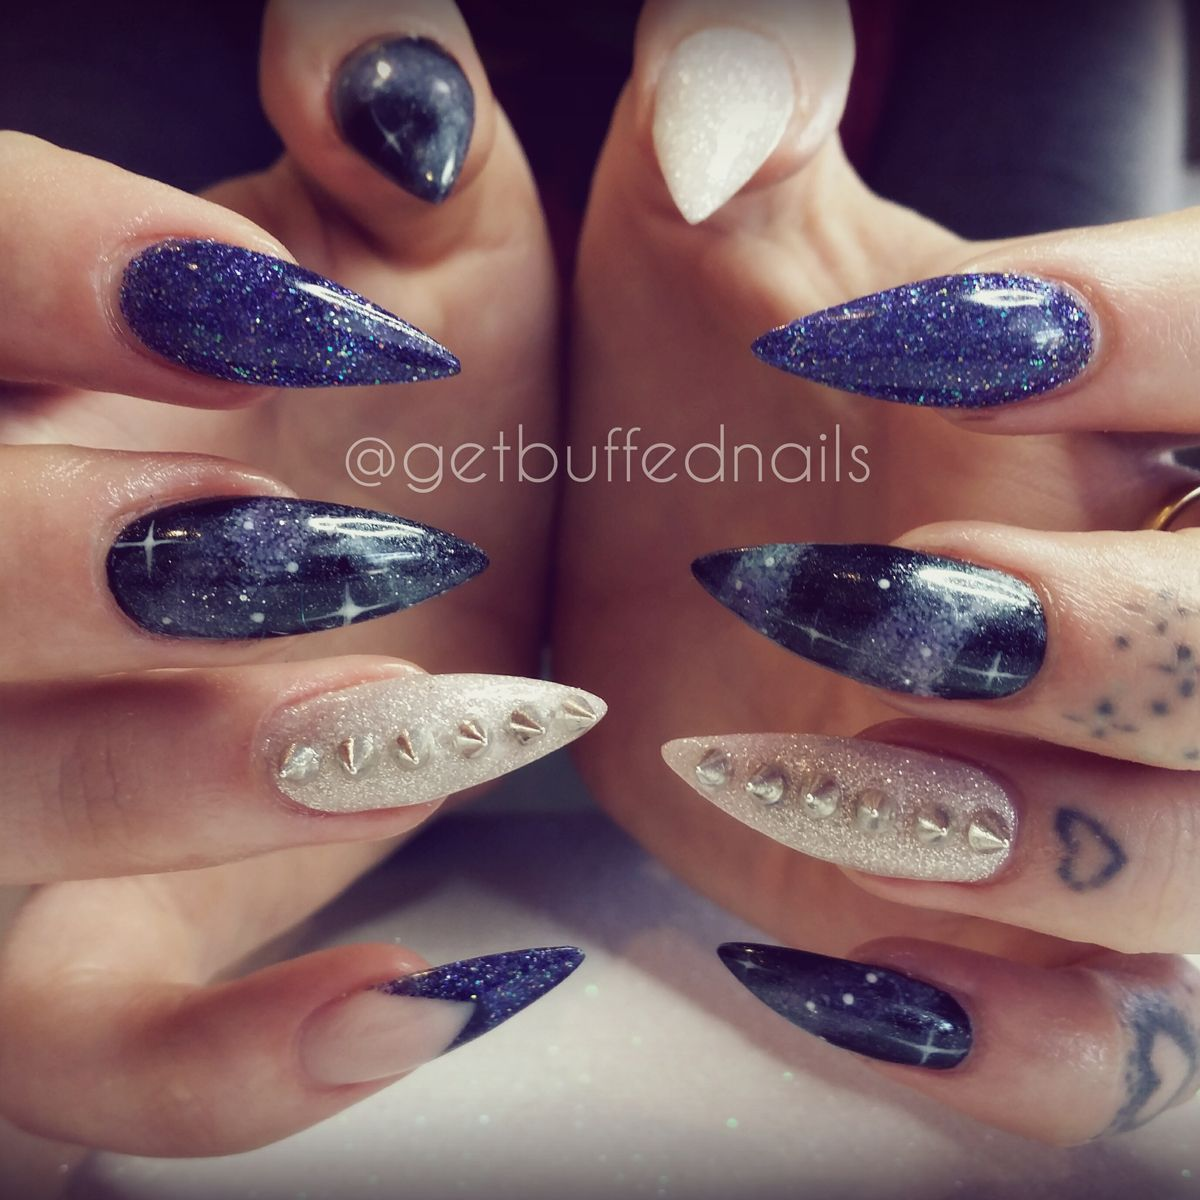 Nail Art Ideas edgy nail art : Sarah Elmaz of Get Buffed Nails has remixed the galaxy nail by ...